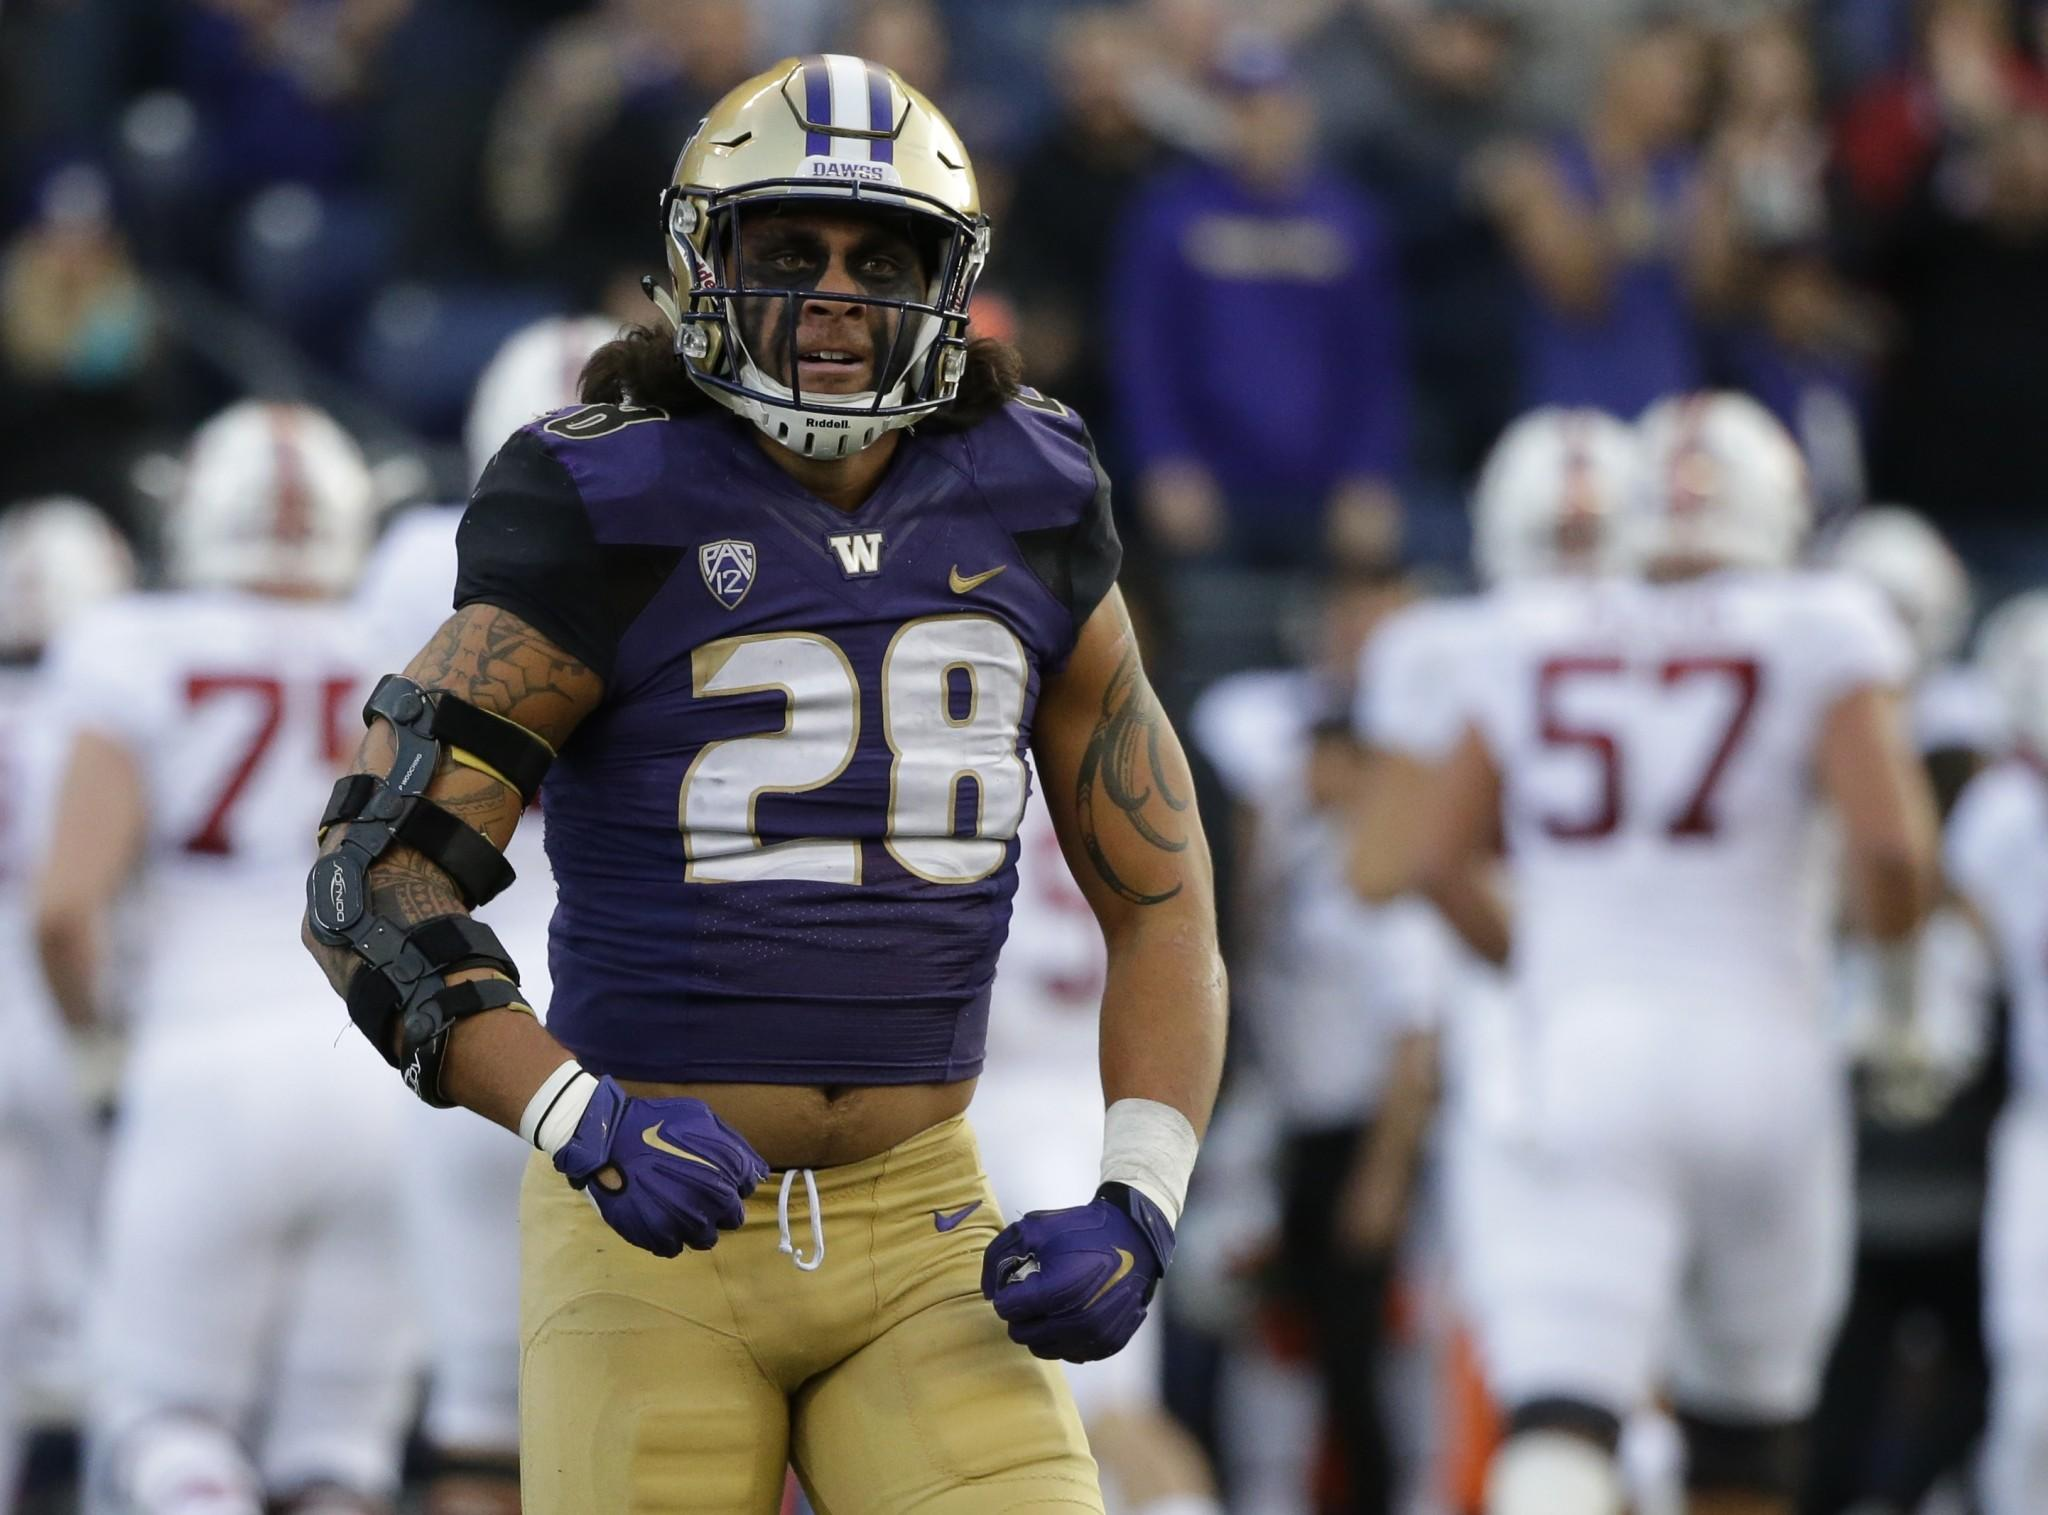 Washington LB Psalm Wooching to pursue rugby instead of NFL career